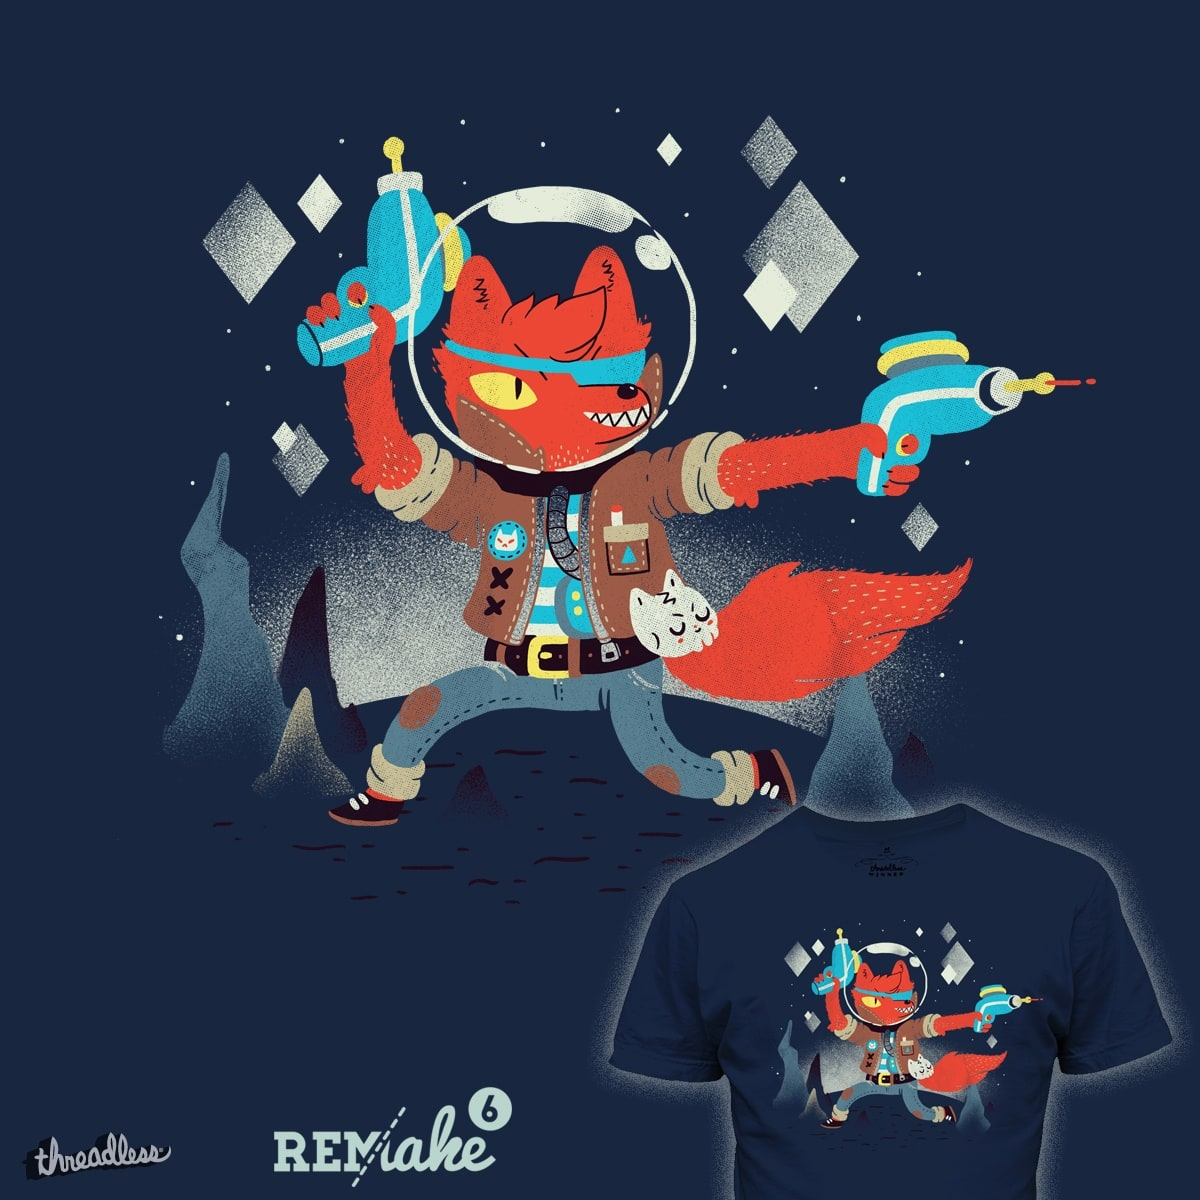 BOUNTY HUNTER SPACECATKILLA by PeculiarTiffany and otrom on Threadless